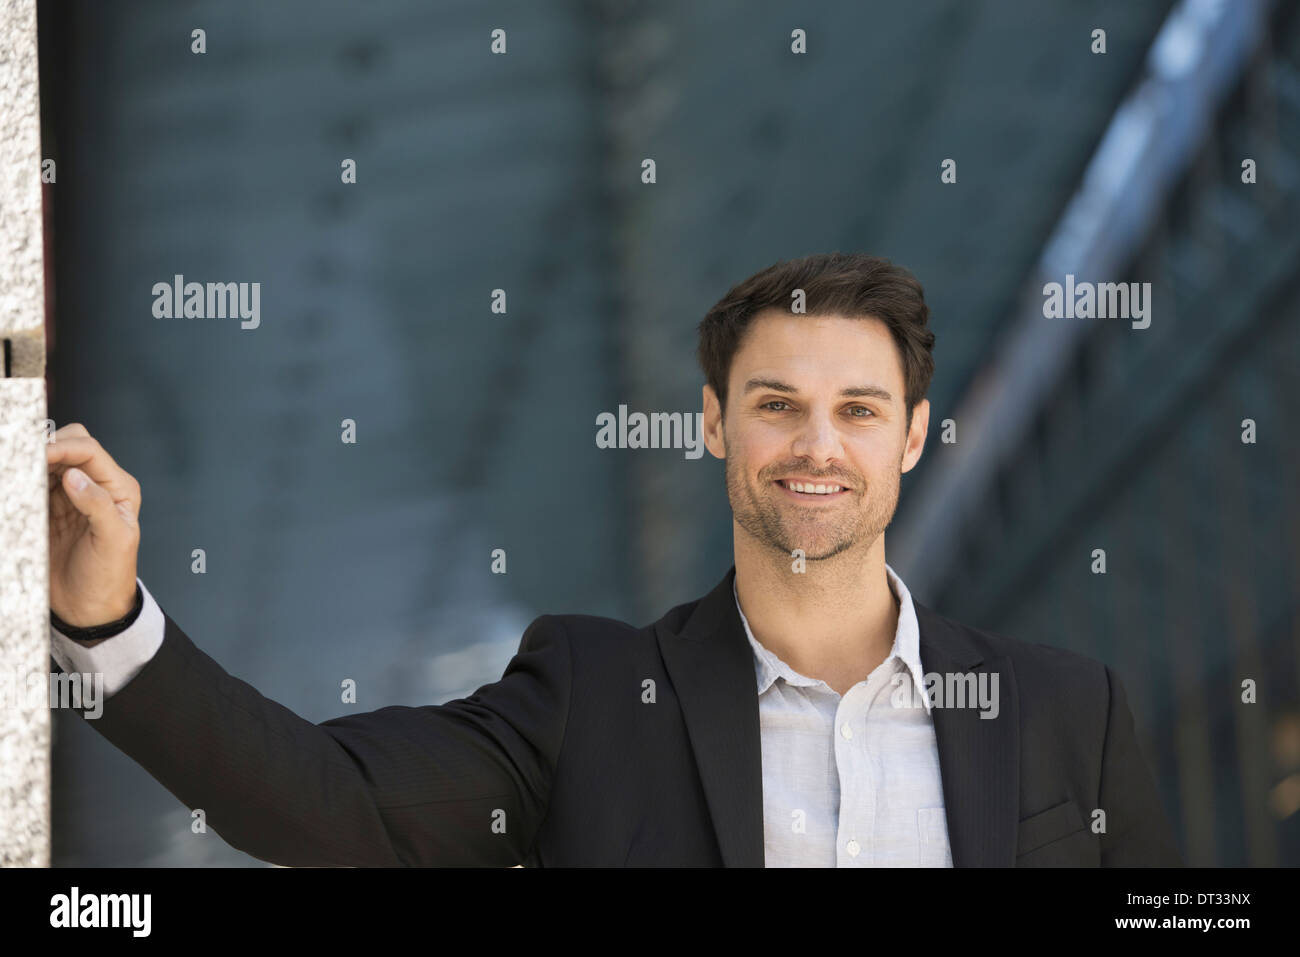 A man in a black jacket and open collared shirt - Stock Image